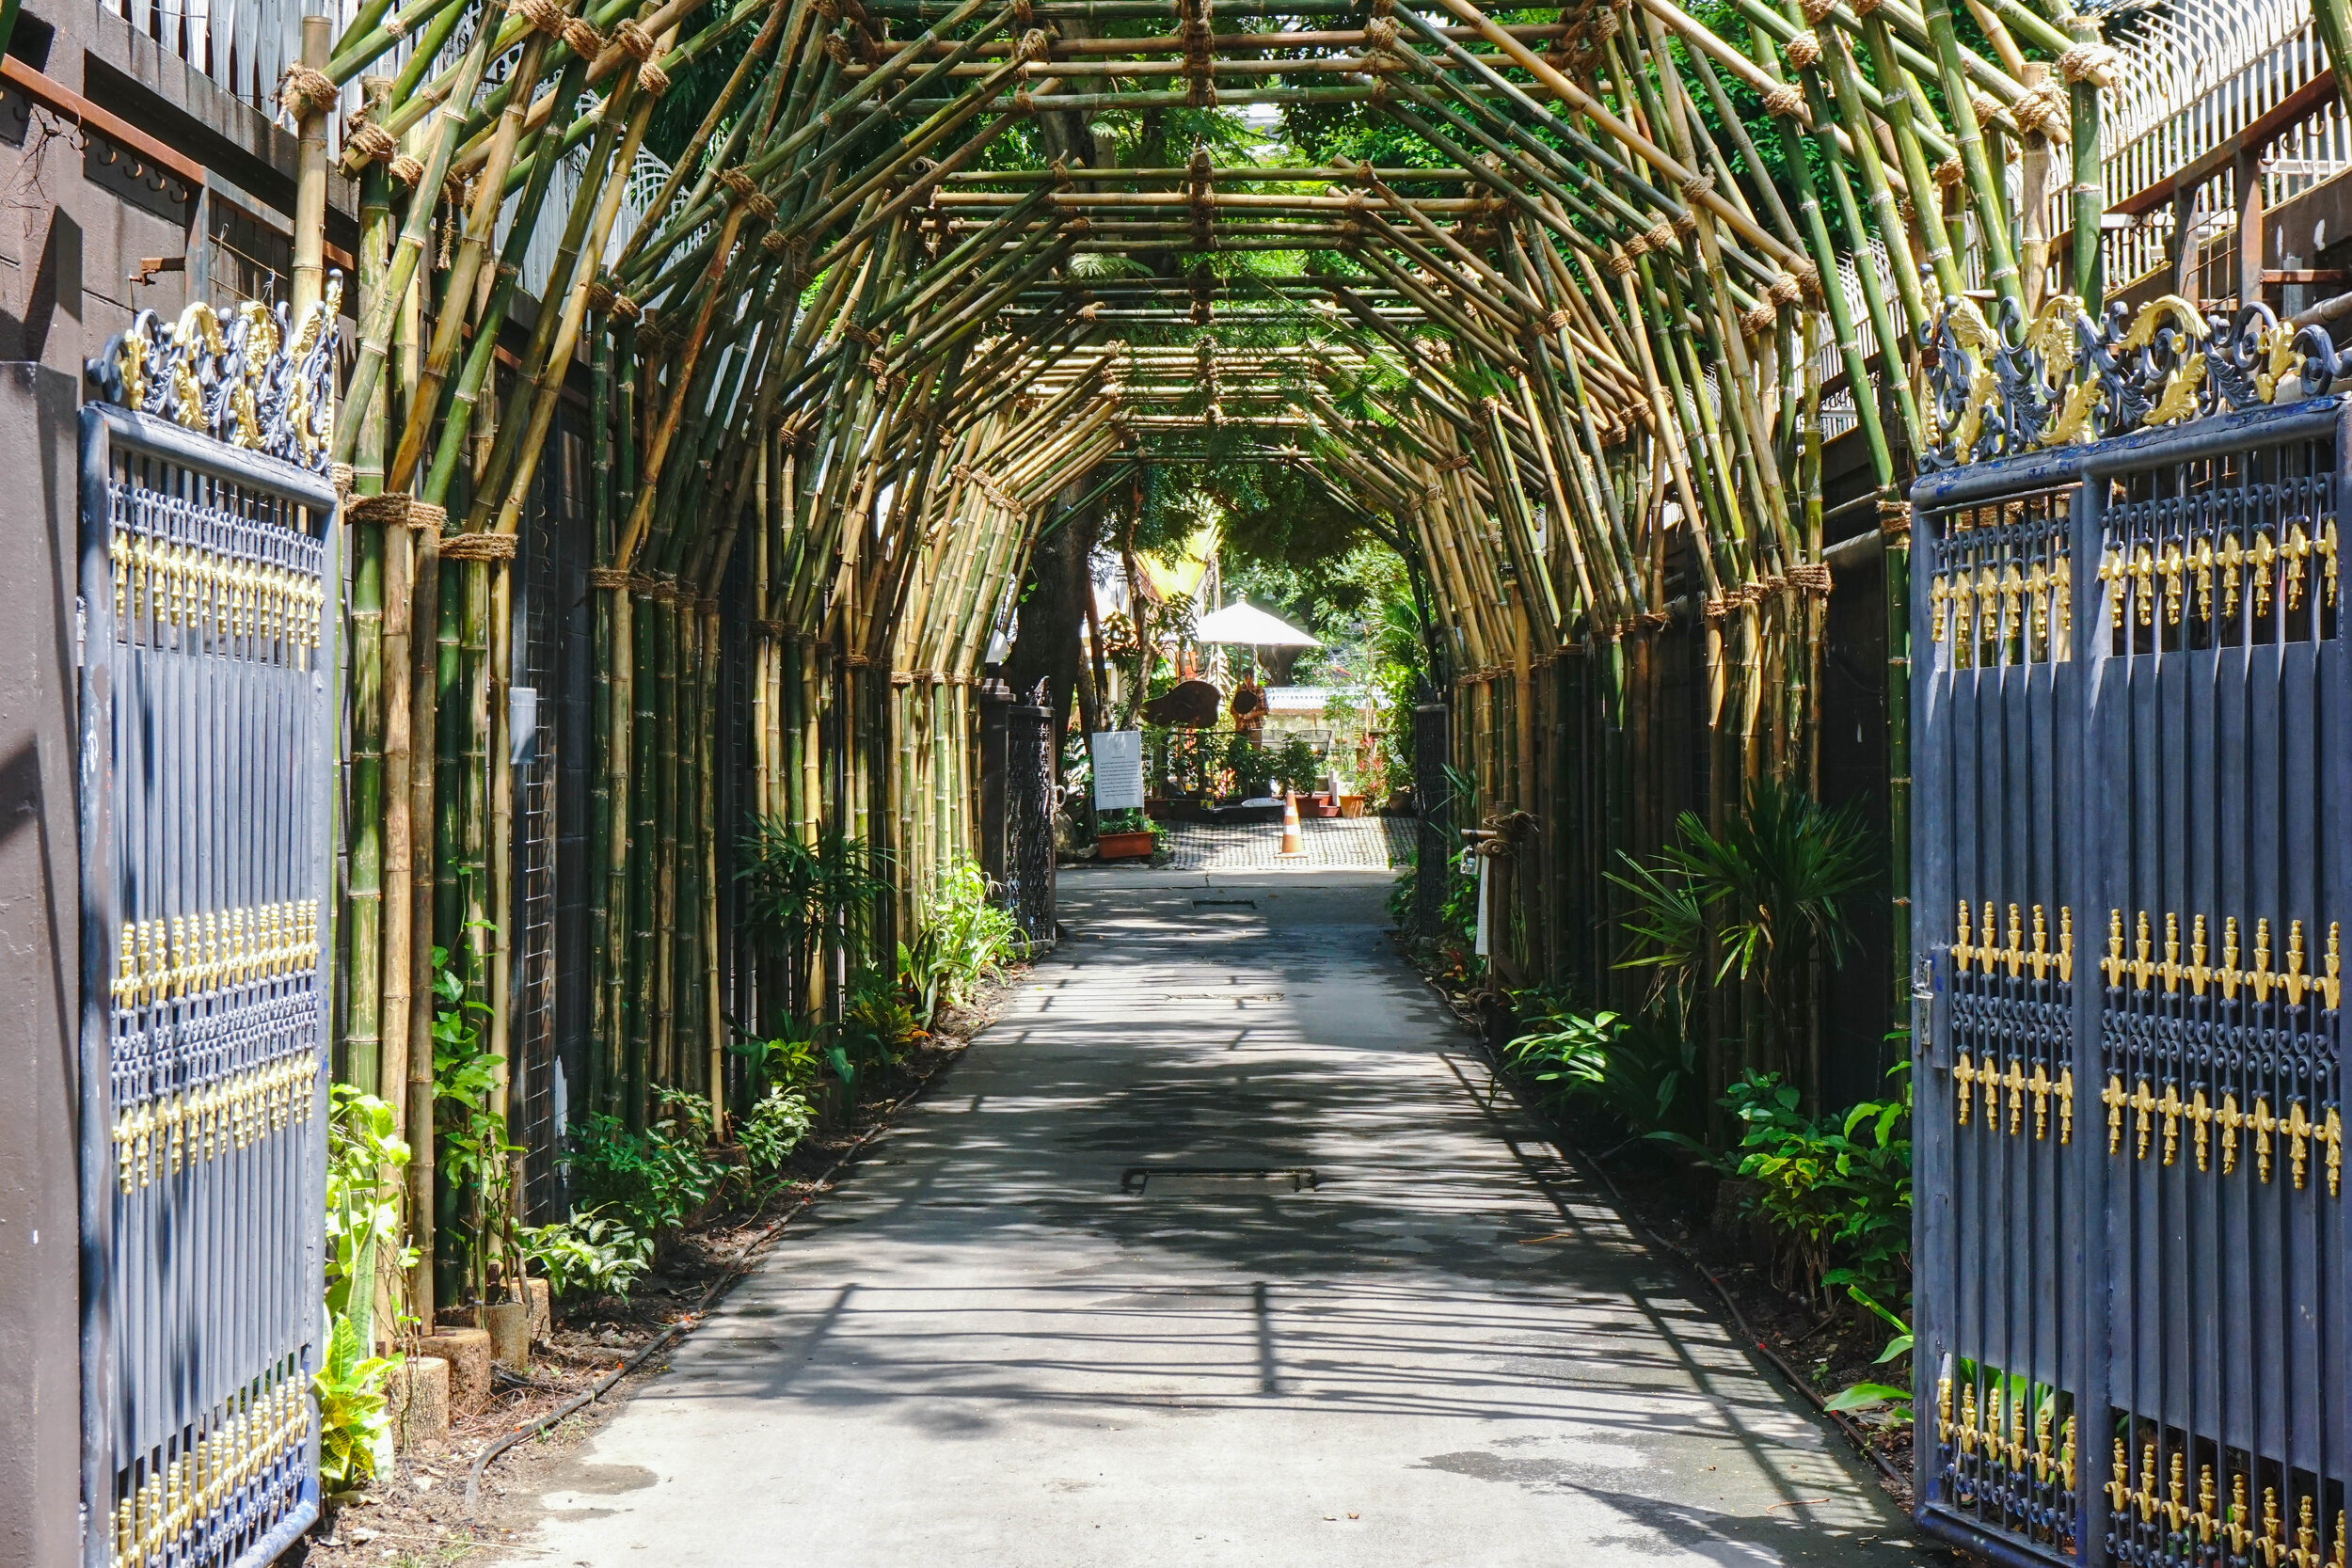 Openspace: The entrance of Bo.lan - a bamboo tunnel that purifies the air and clears pollution